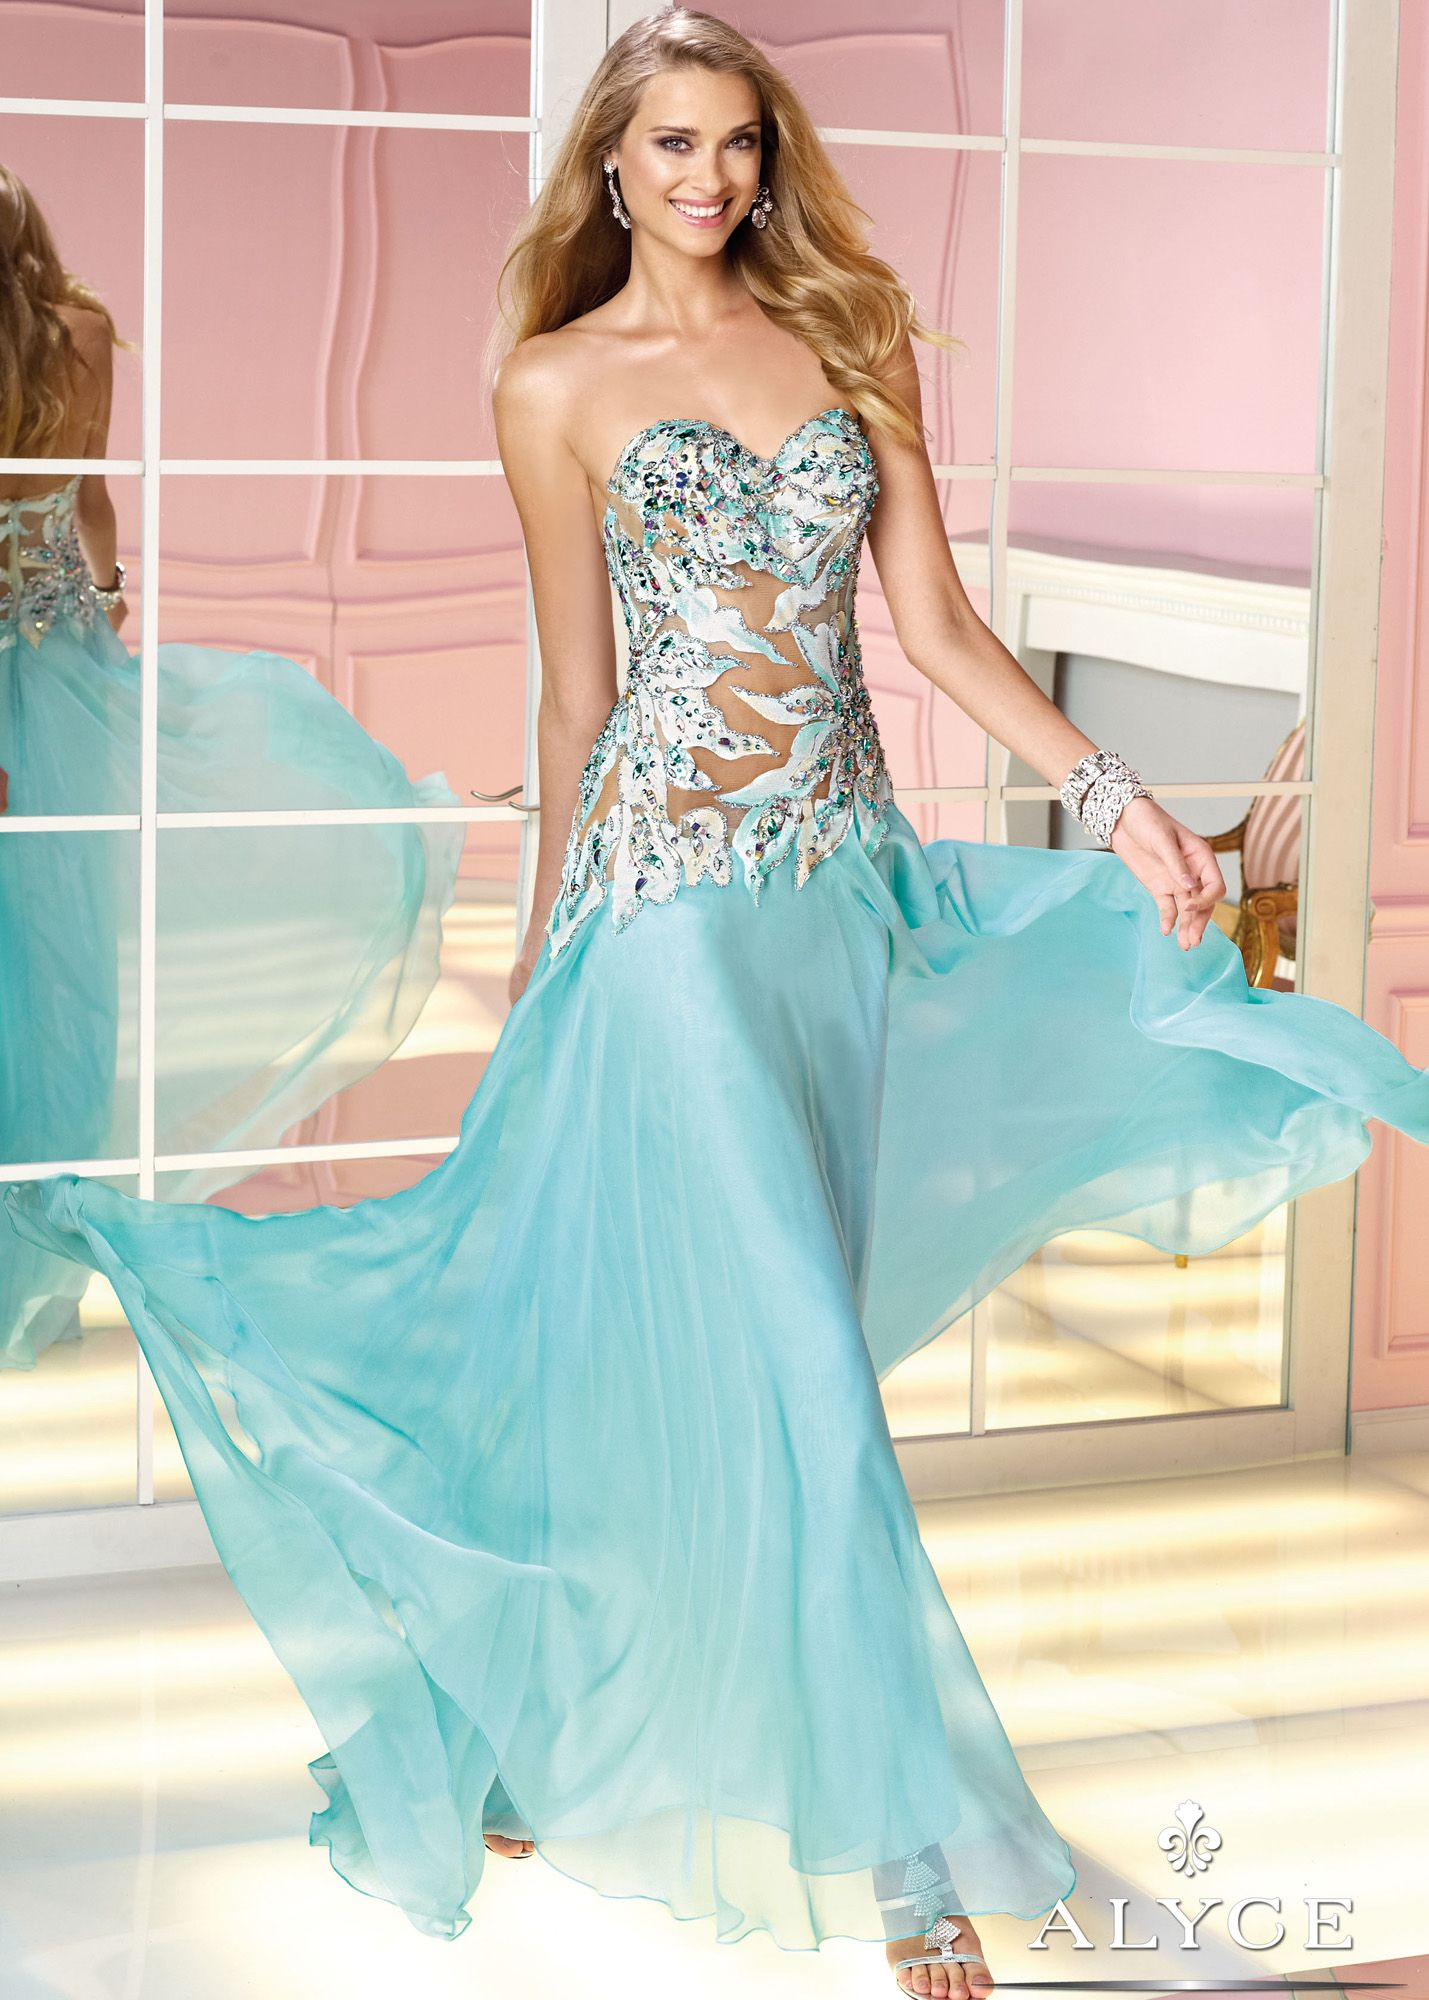 Alyce Prom 6202 - Hush Strapless Embroidered Chiffon Prom Dresses ...